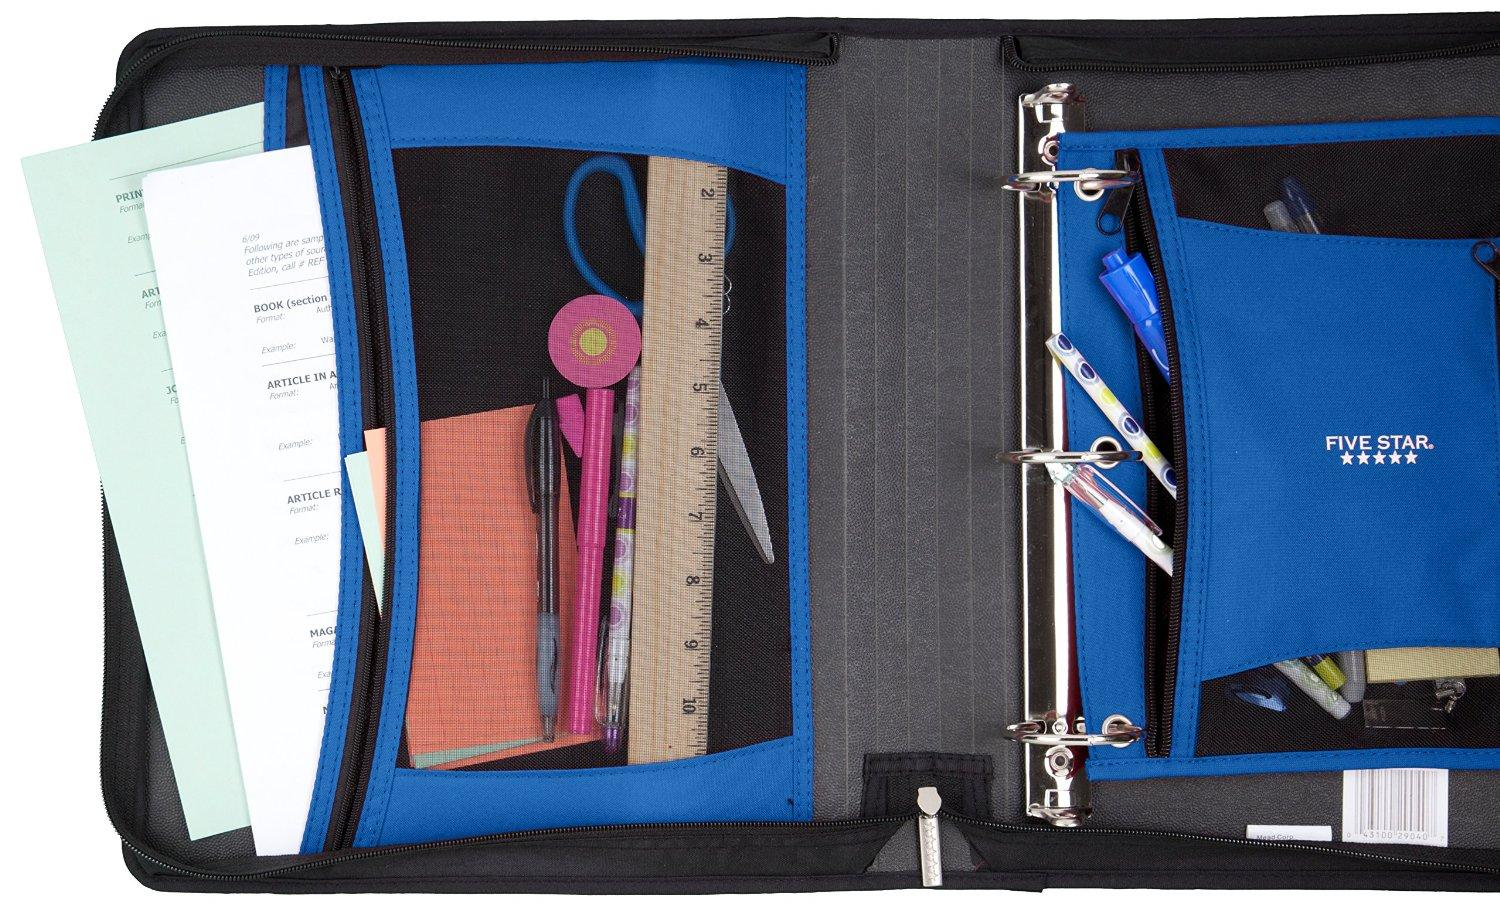 Five star 2 zipper binder removable pencil pouch included xpanz gray 73780 for Trapper keeper 2 sewn binder with exterior storage